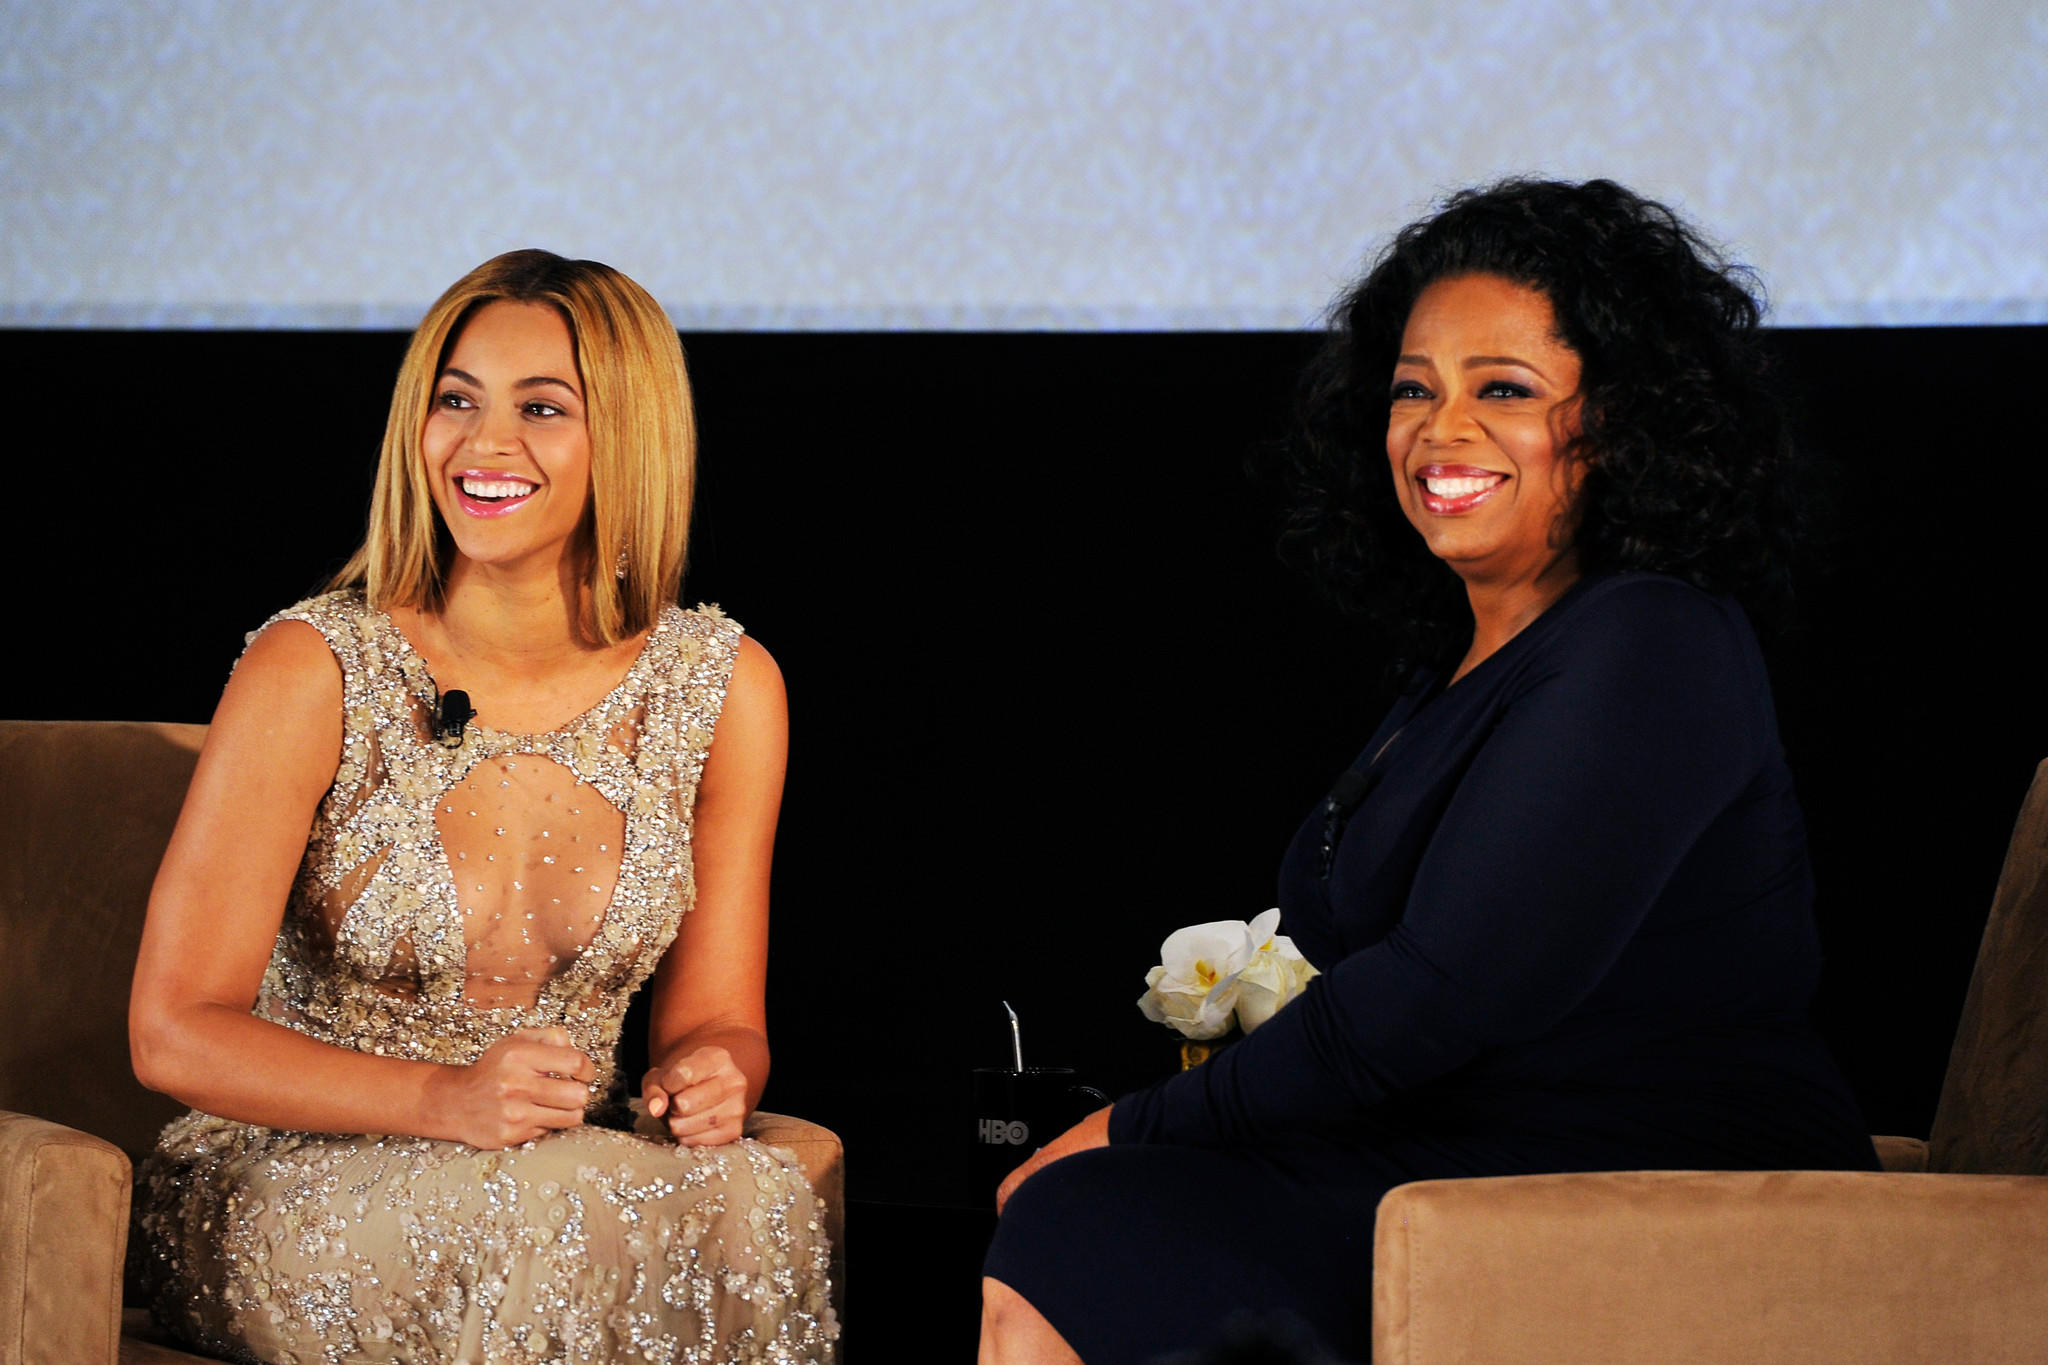 Beyoncé, left, and Oprah will join other celebrities in an hourlong fundraiser for Hurricane Harvey relief. (Larry Busacca / Getty Images)